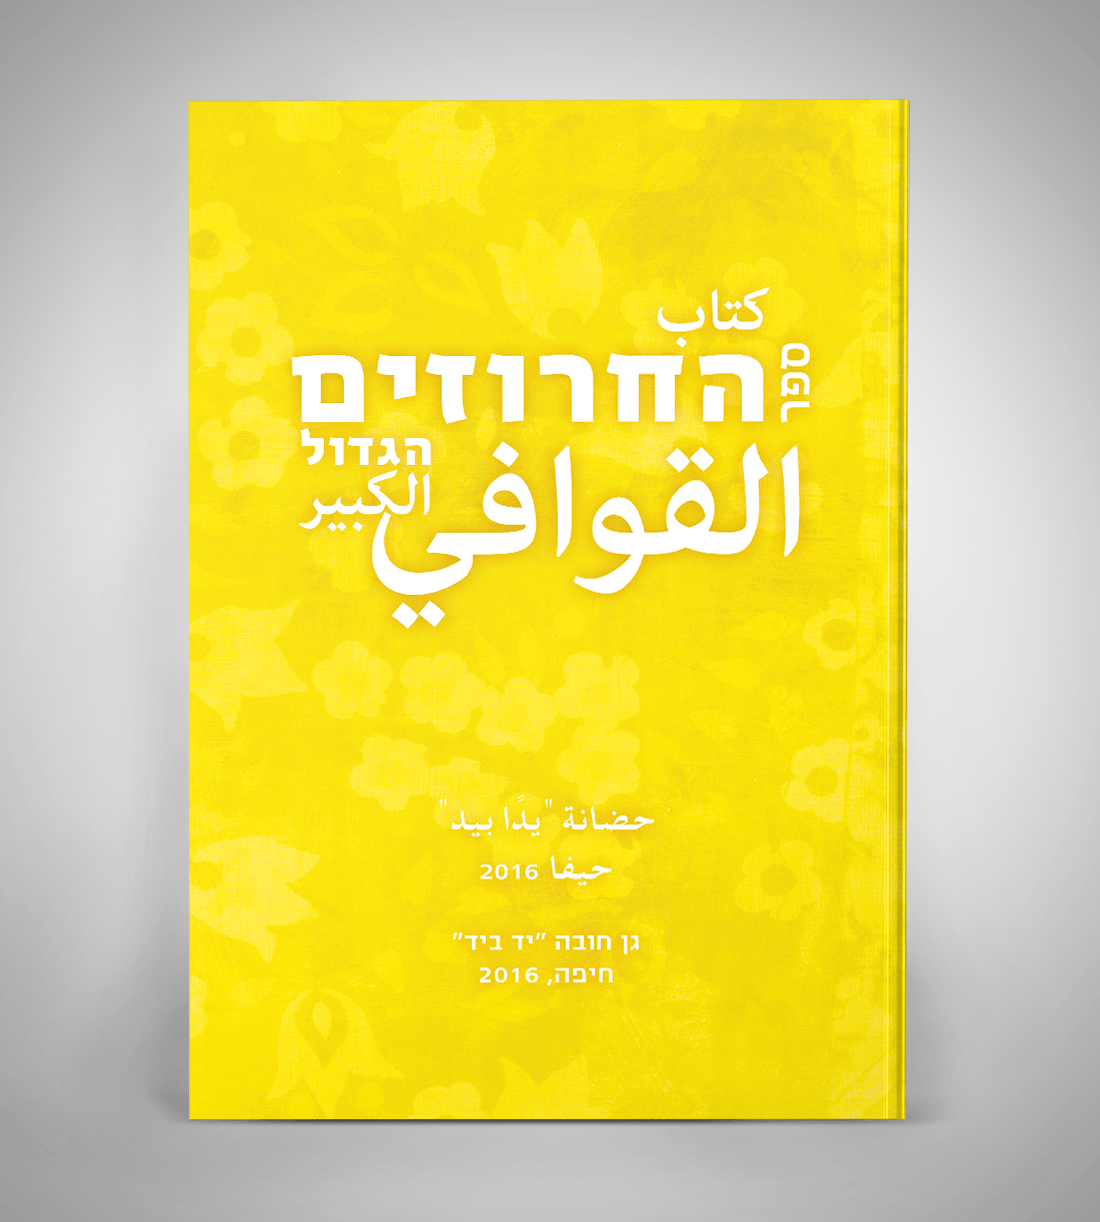 https://bigeyes.co.il/wp-content/uploads/2019/07/shtuzim-book-cover-1.png